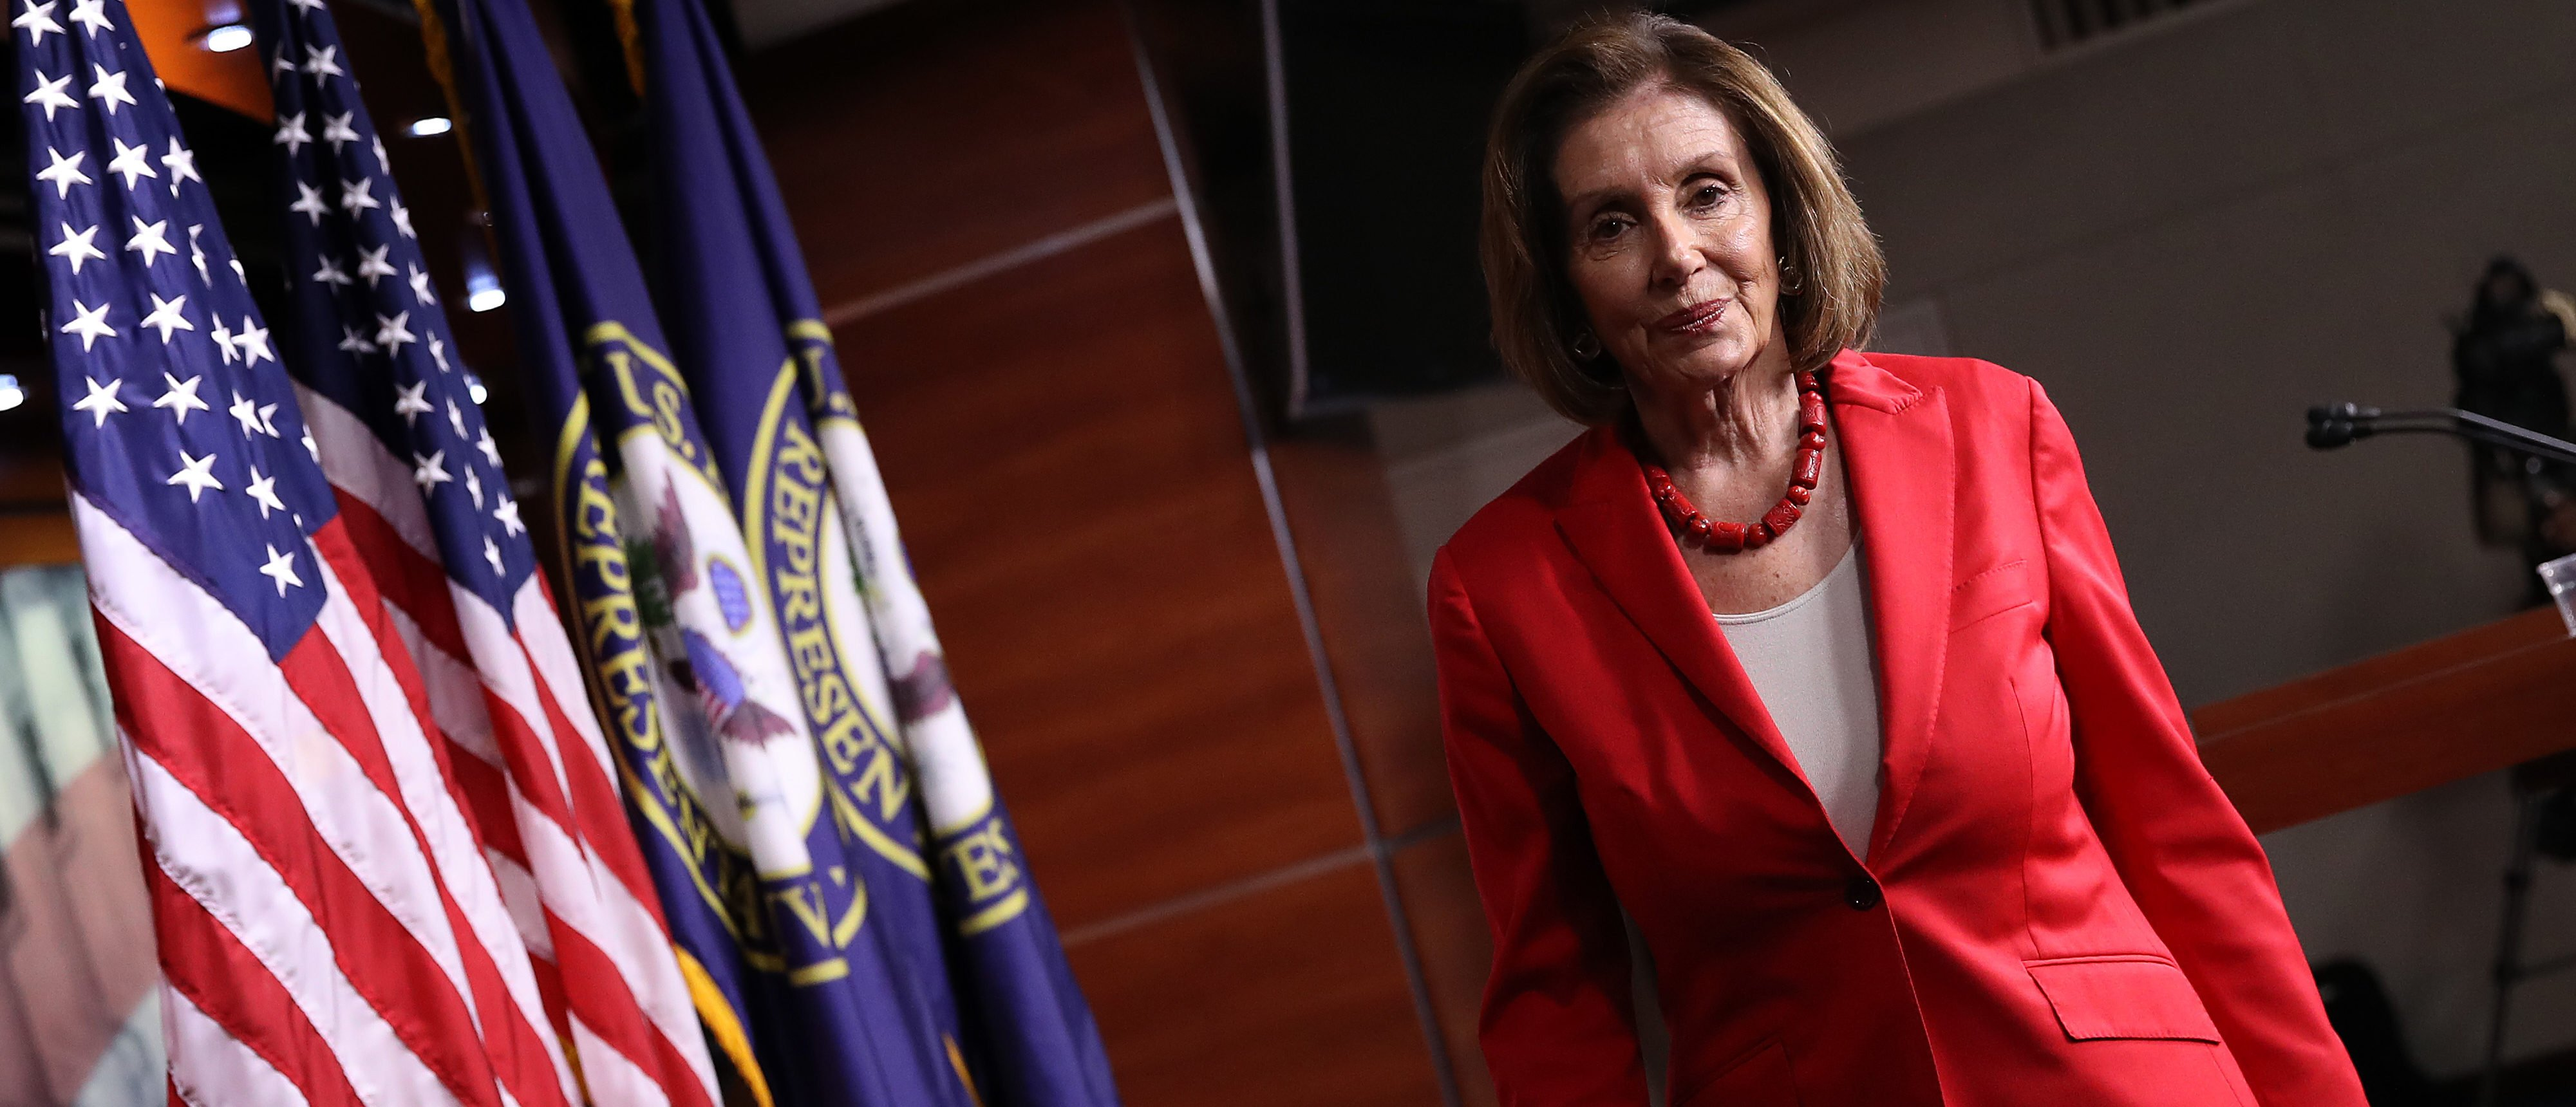 WASHINGTON, DC - JUNE 27: Speaker of the House Nancy Pelosi (D-CA) departs following her weekly press conference at the U.S. Capitol on June 27, 2019 in Washington, DC. Pelosi answered a range of questions focusing primarily on immigration issues and pending legislation before the U.S. Congress. (Photo by Win McNamee/Getty Images)